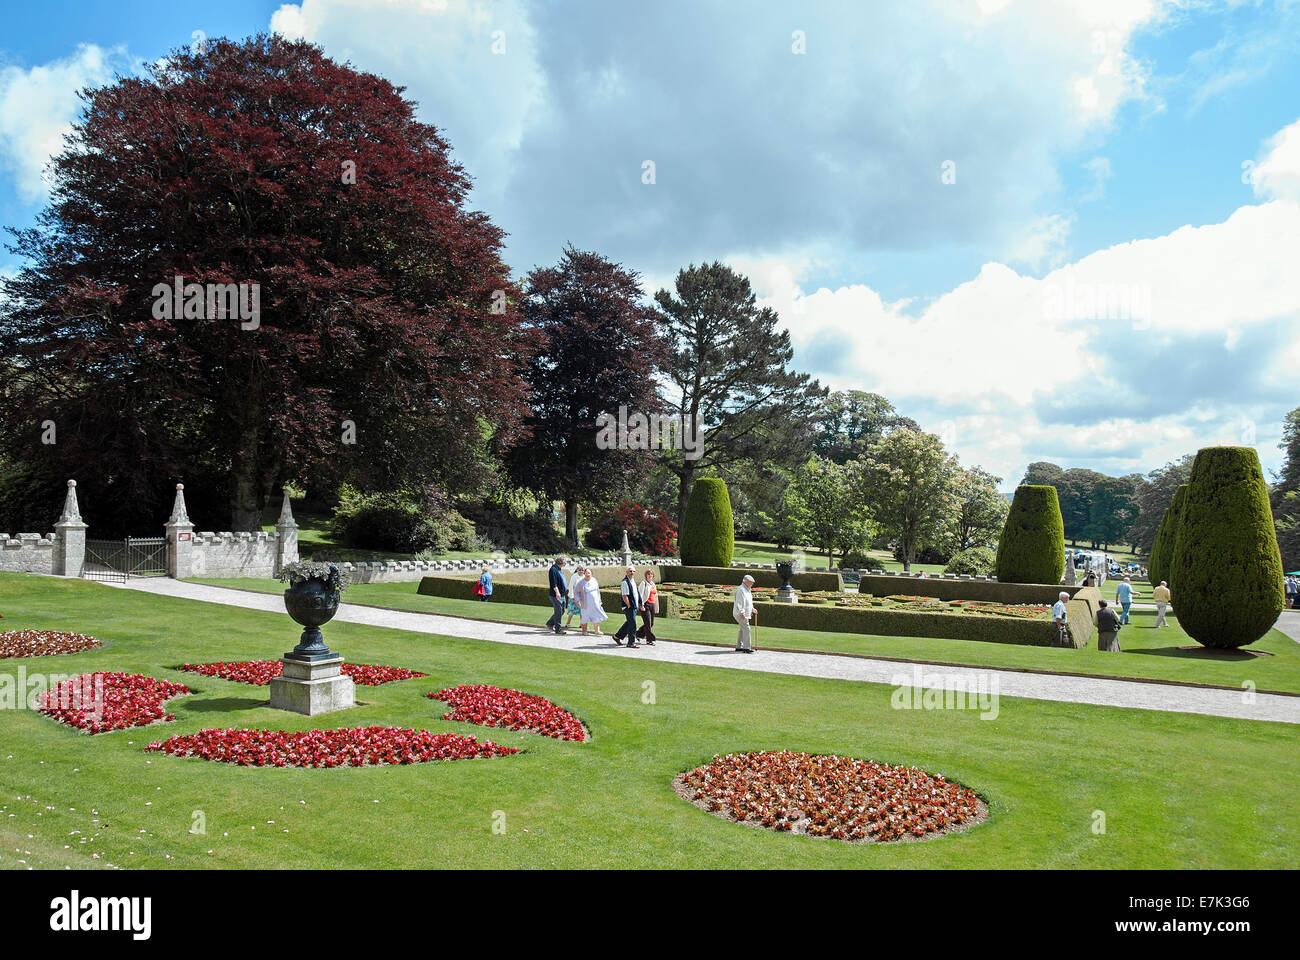 The formal gardens at Lanhydrock house near Bodmin in Cornwall, UK - Stock Image